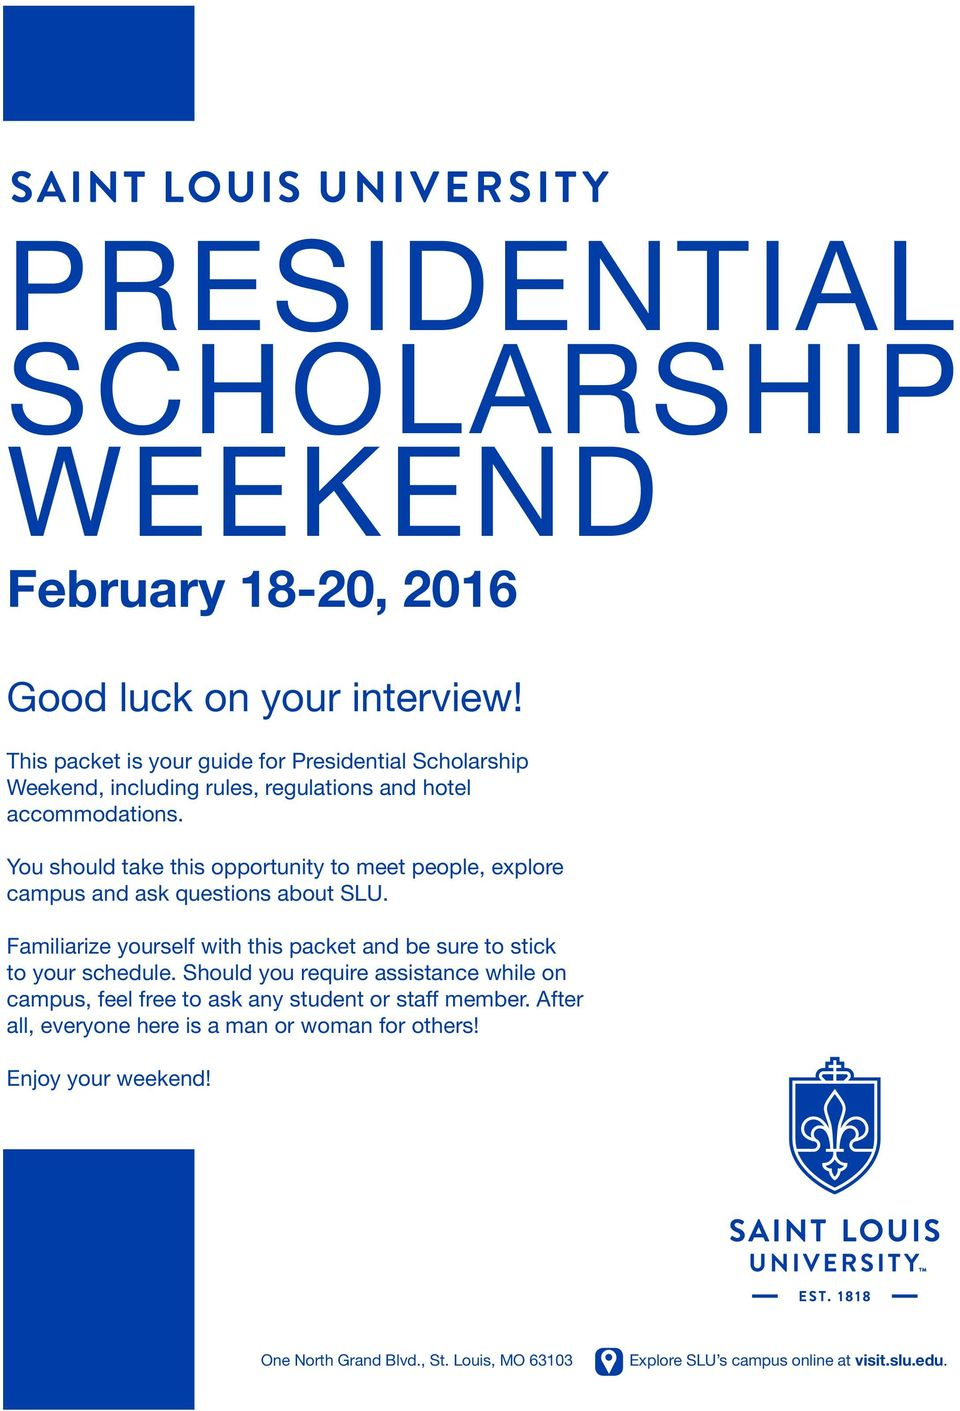 You should take this opportunity to meet people, explore campus and ask questions about SLU.